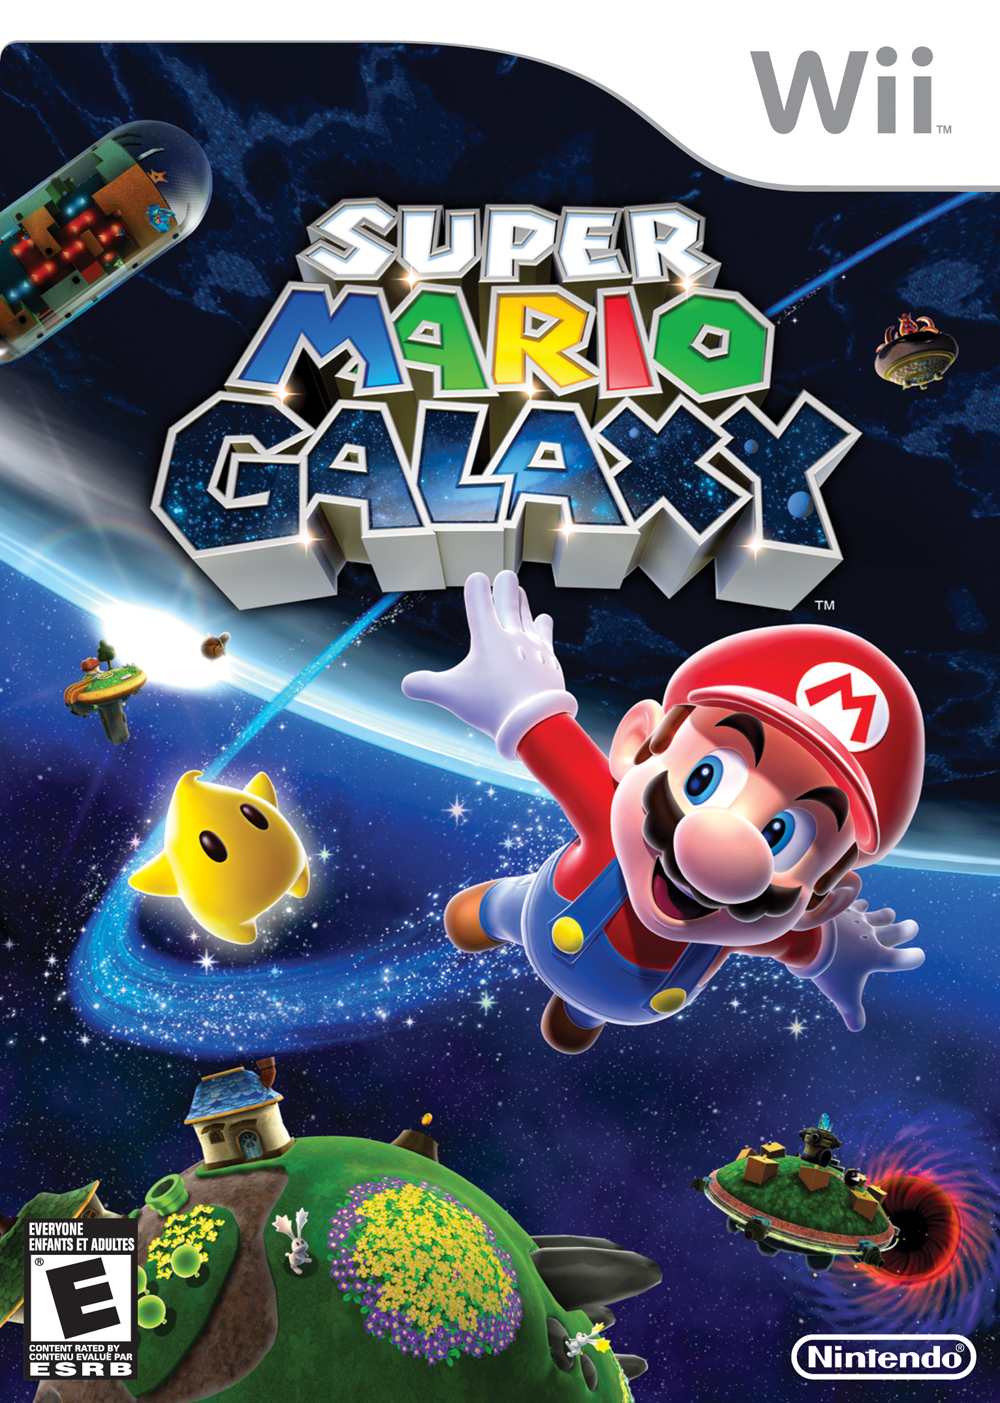 Super Mario Galaxy | MarioWiki | FANDOM powered by Wikia